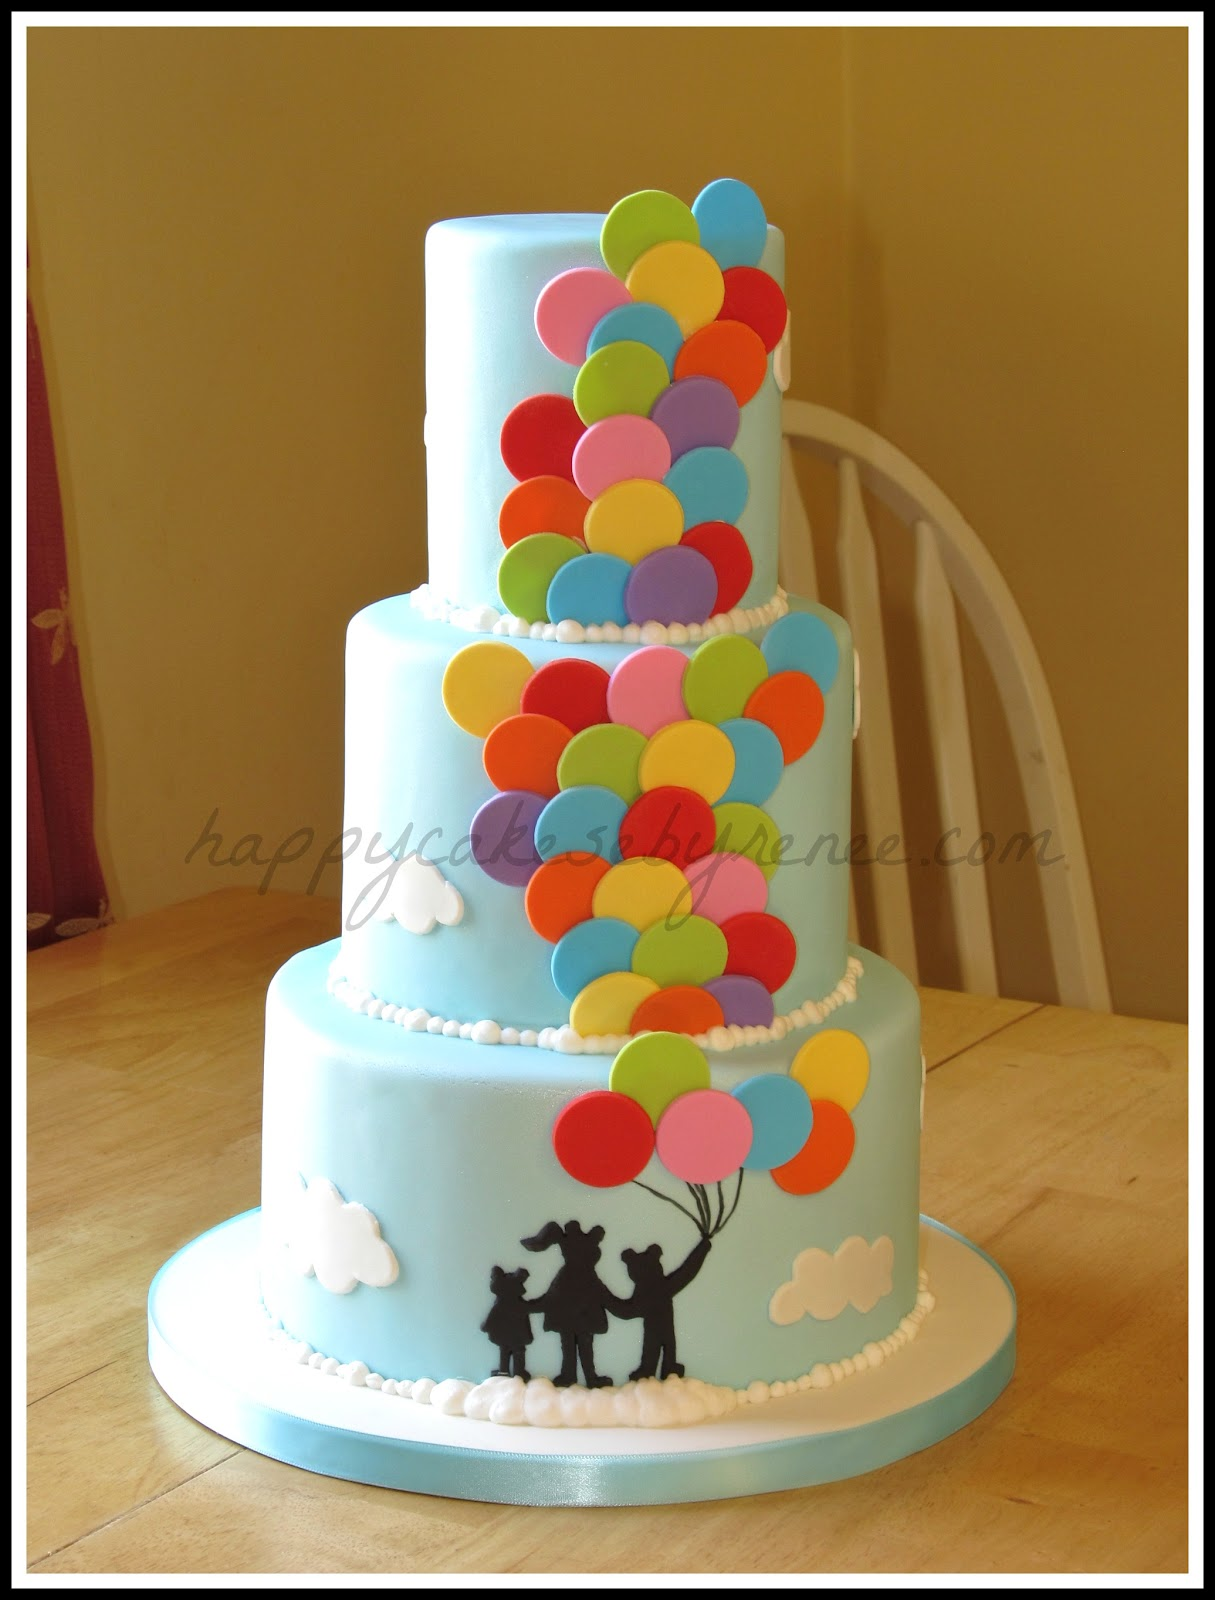 Cake Design Ballarat : Balloon Cake!   Renee Conner Cake Design